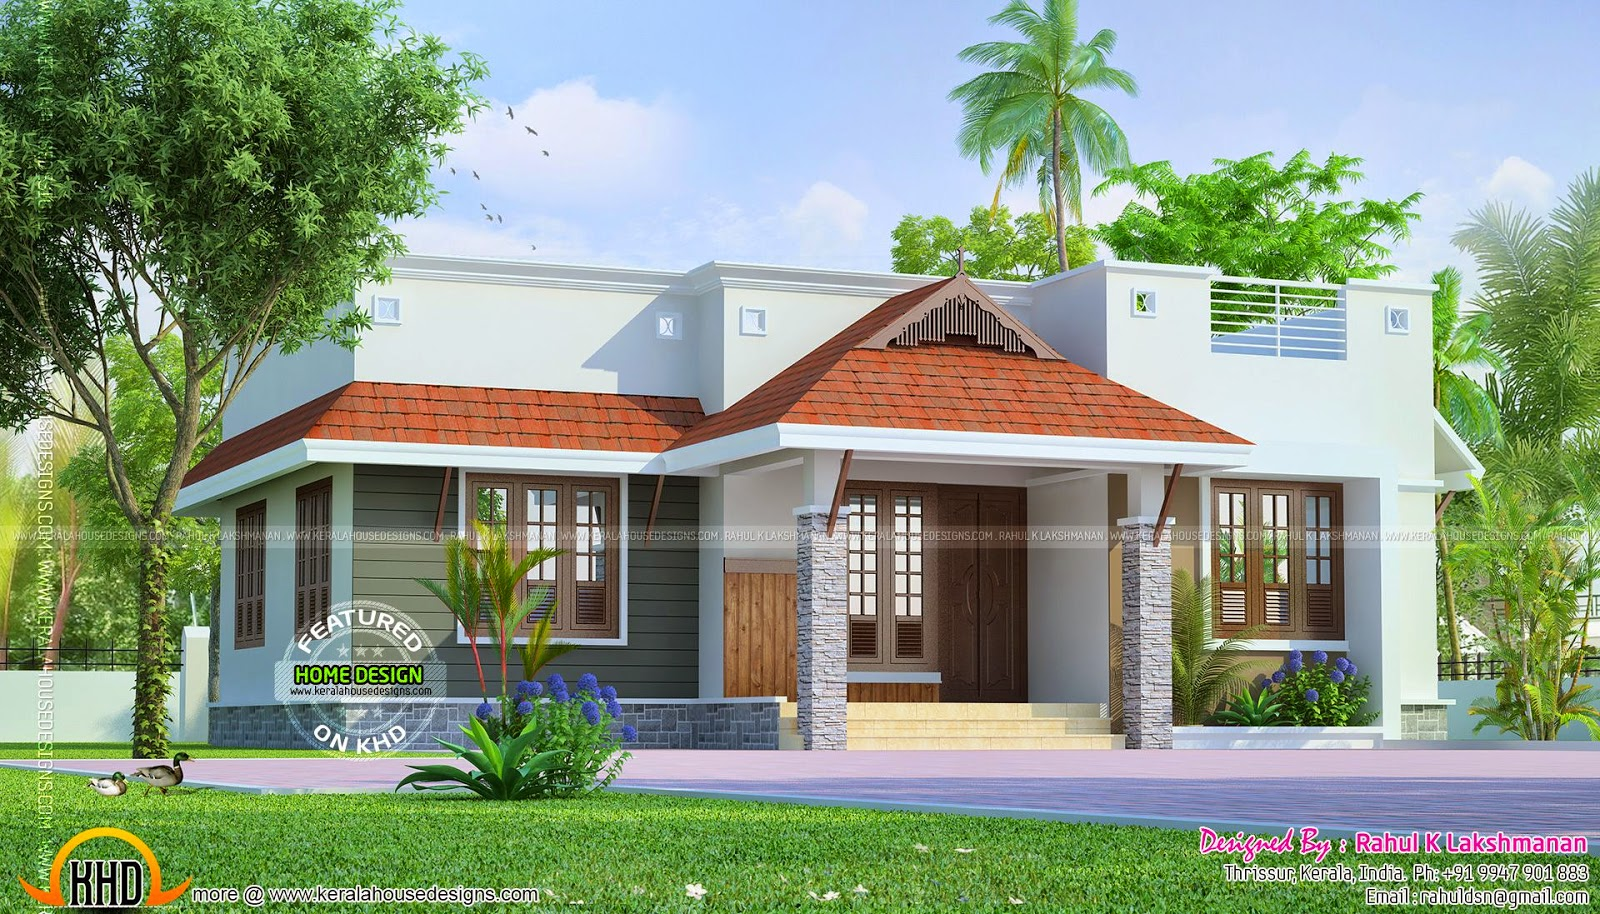 Dream home for common man kerala home design and floor plans for Kerala dream home photos